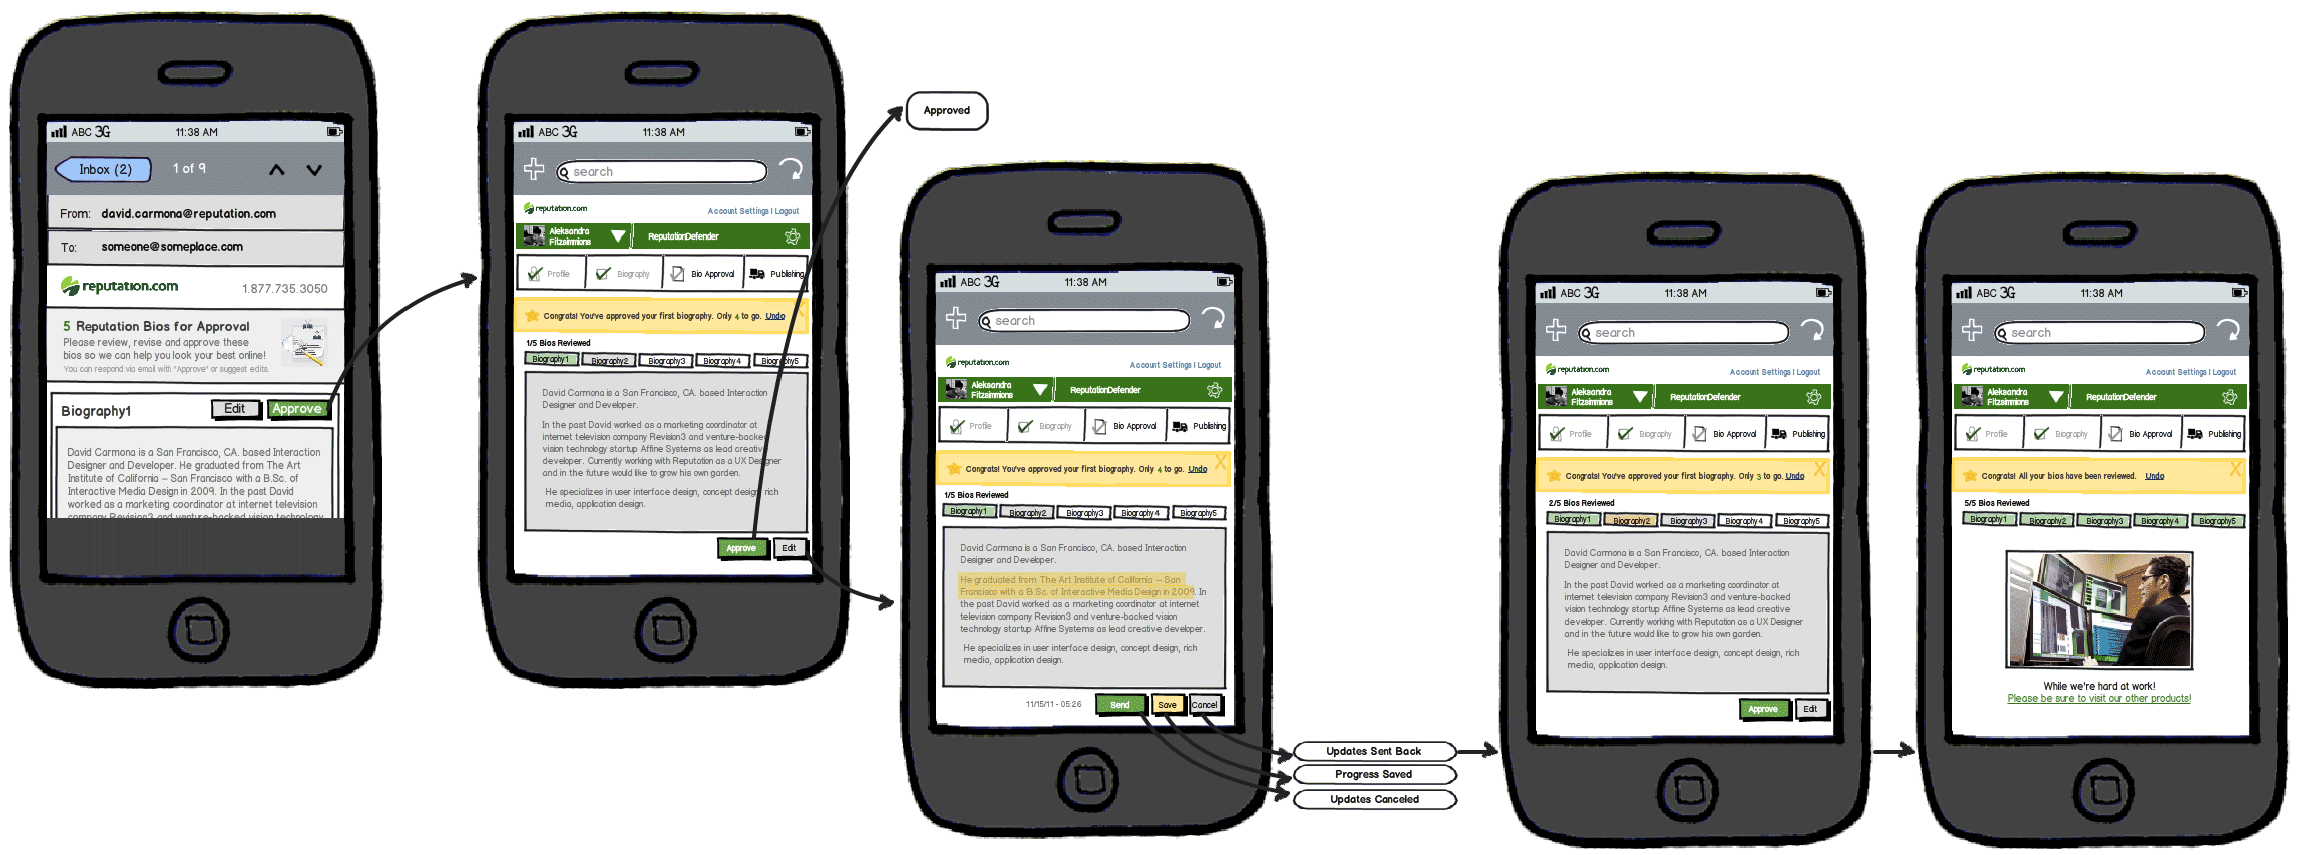 mobilebio-approval7_Page_2.png